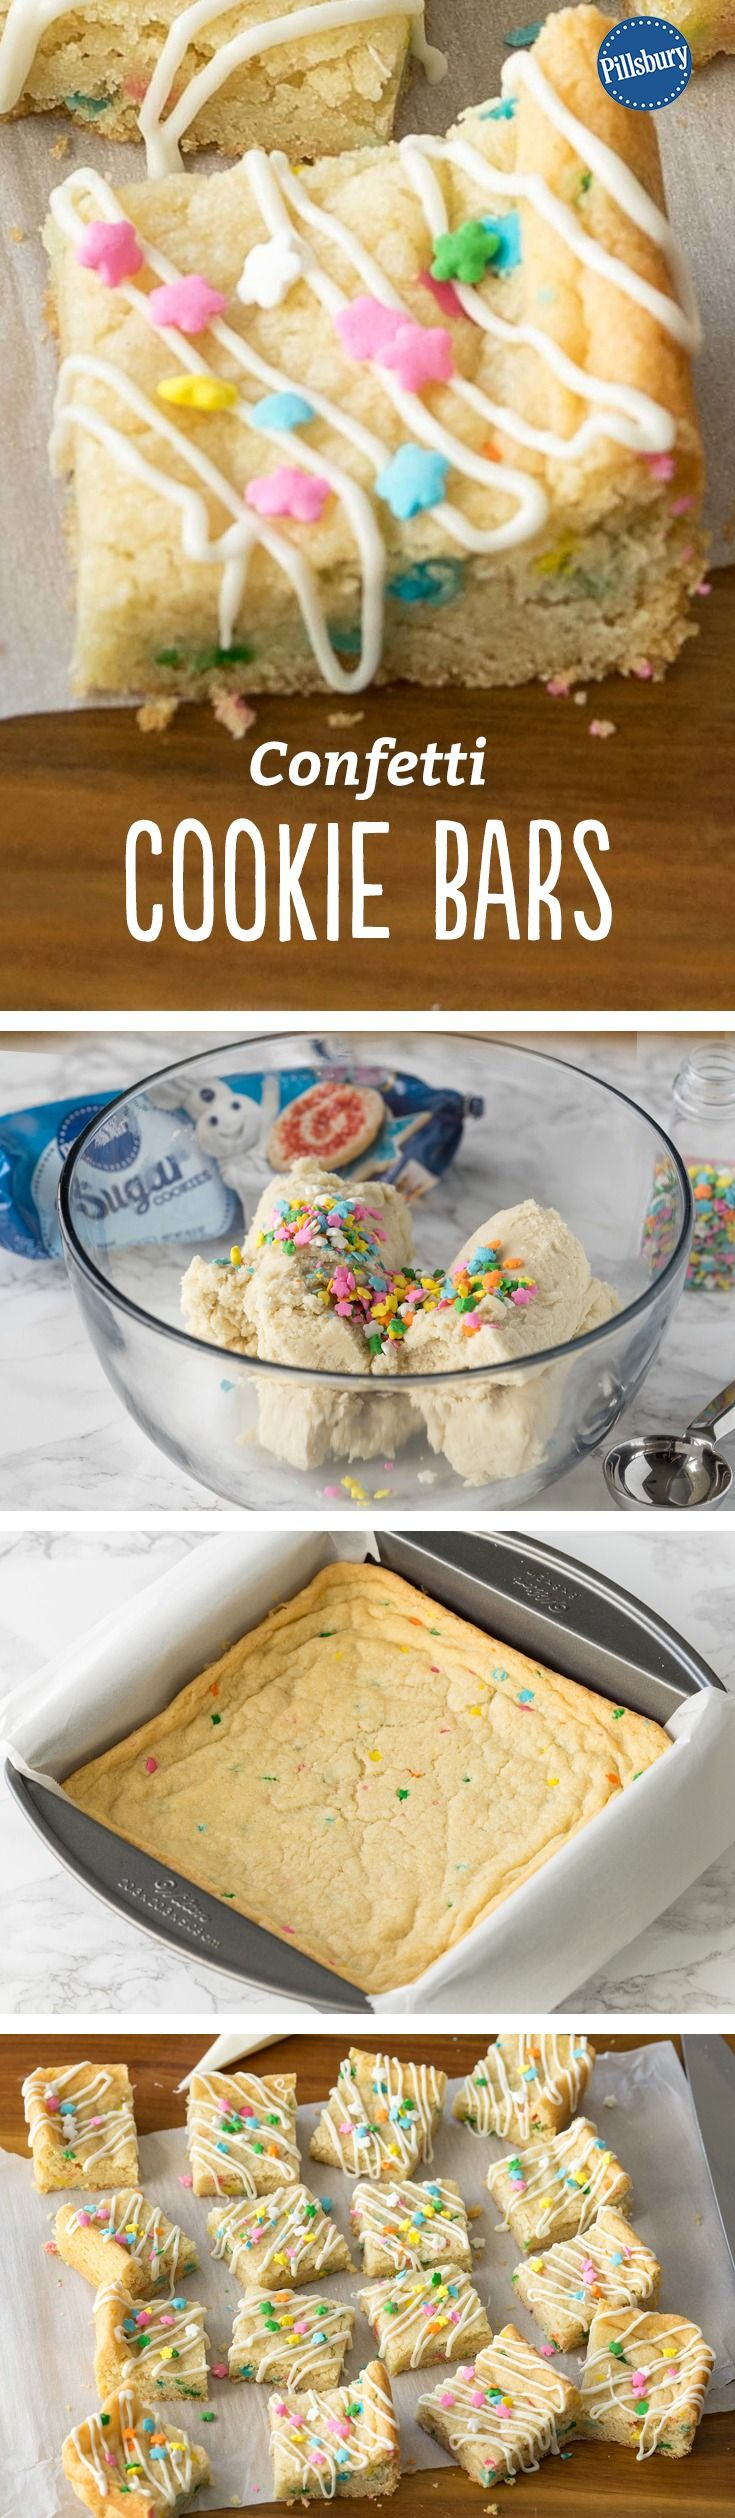 Confetti Cookie Bars - With just 3 ingredients and only 5 minutes of prep, you can make these adorable sugar cookie bars, perfect for celebrations or a simple dessert in spring.